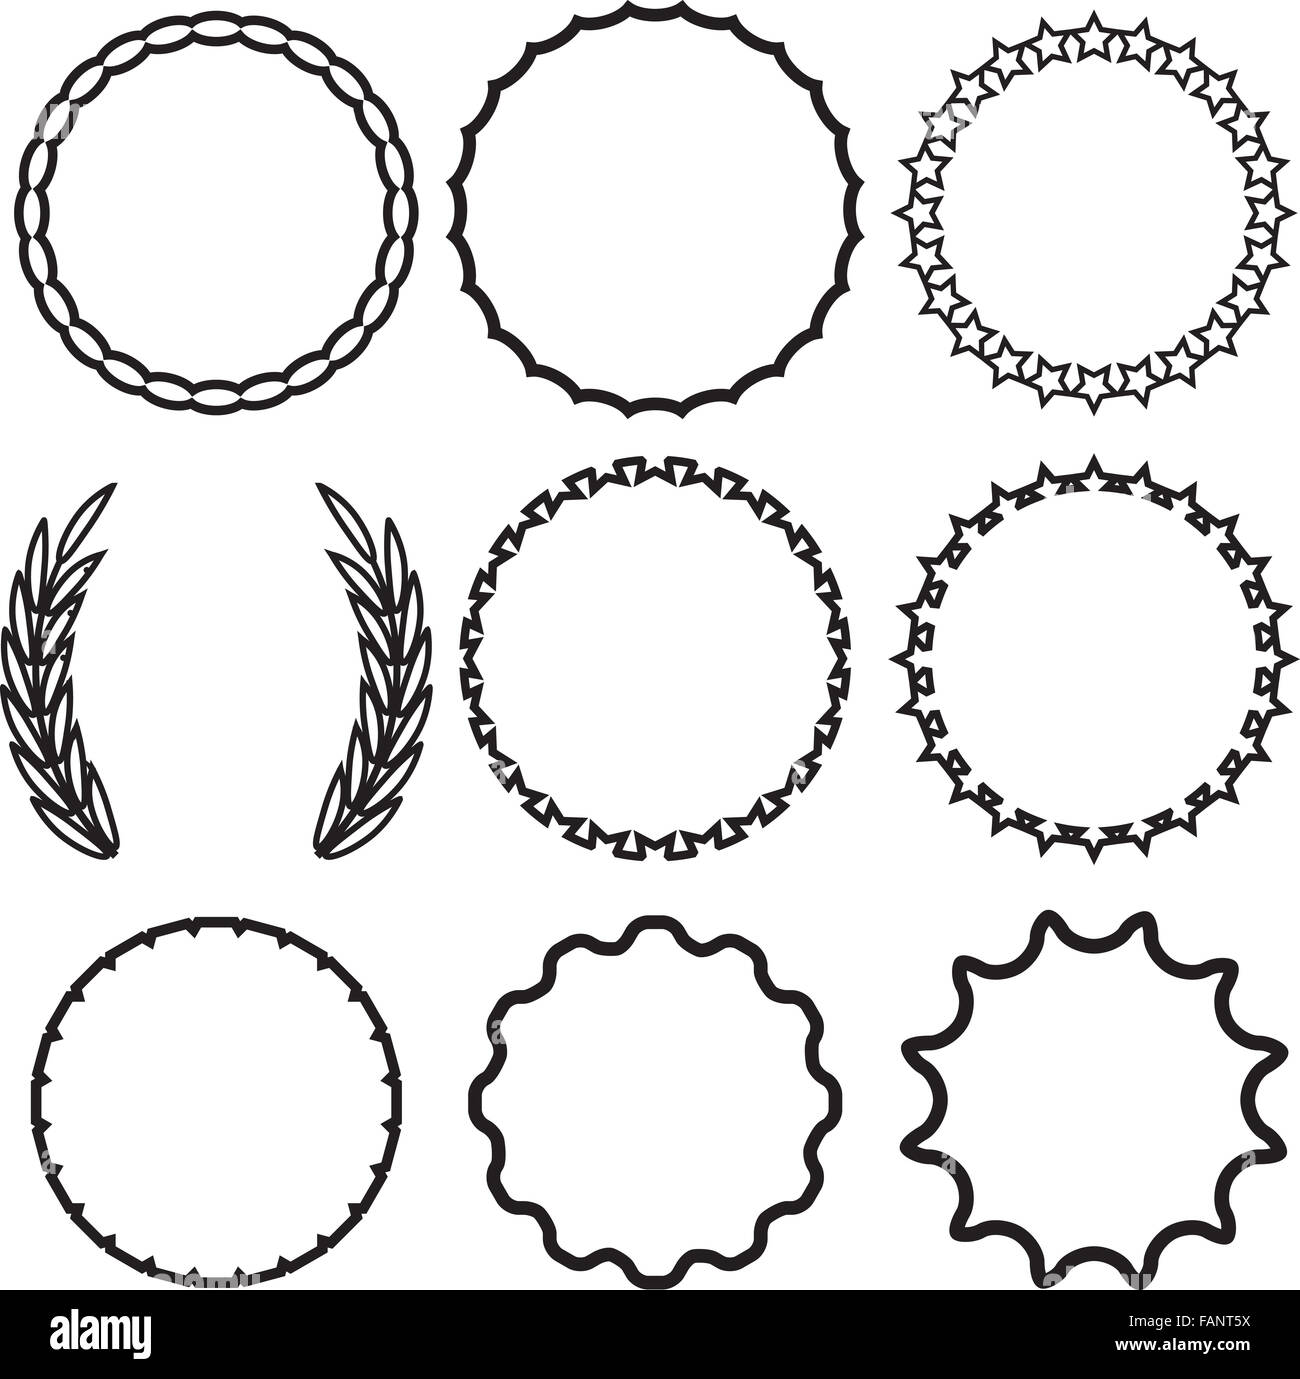 Frame round set decoration template vintage circle decorative stock frame round set decoration template vintage circle decorative border invitation decor emblem label wedding vector art abstr junglespirit Choice Image